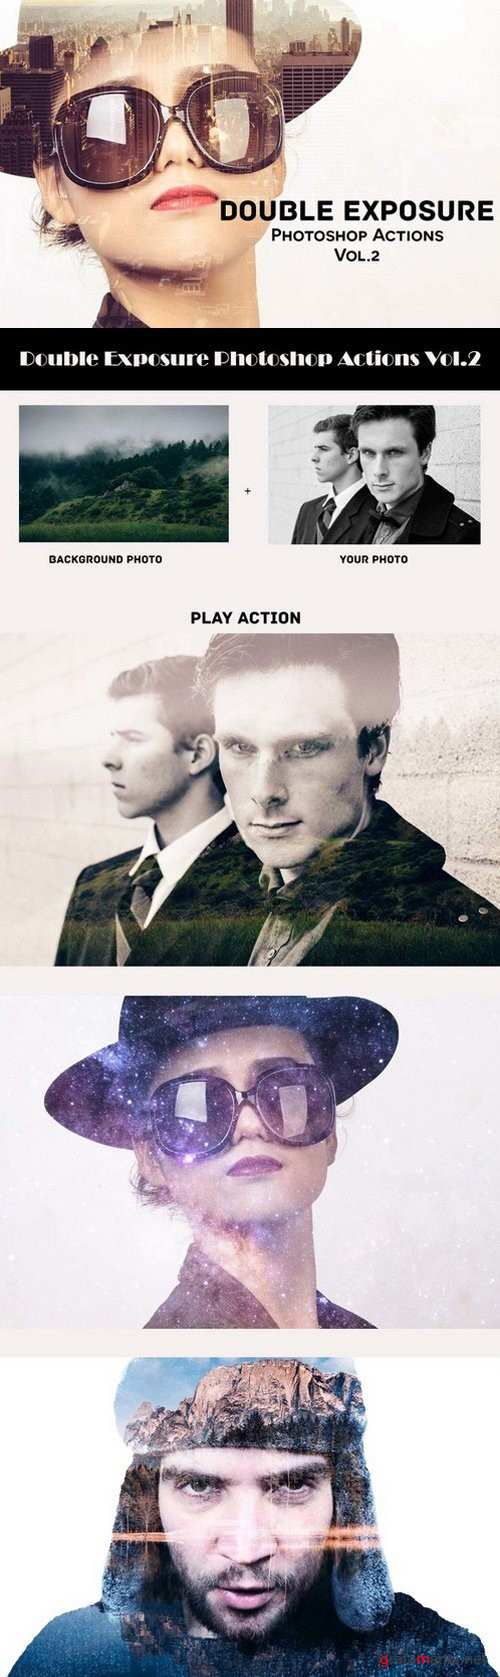 DOUBLE EXPOSURE PHOTOSHOP ACTIONS V2 - 942754